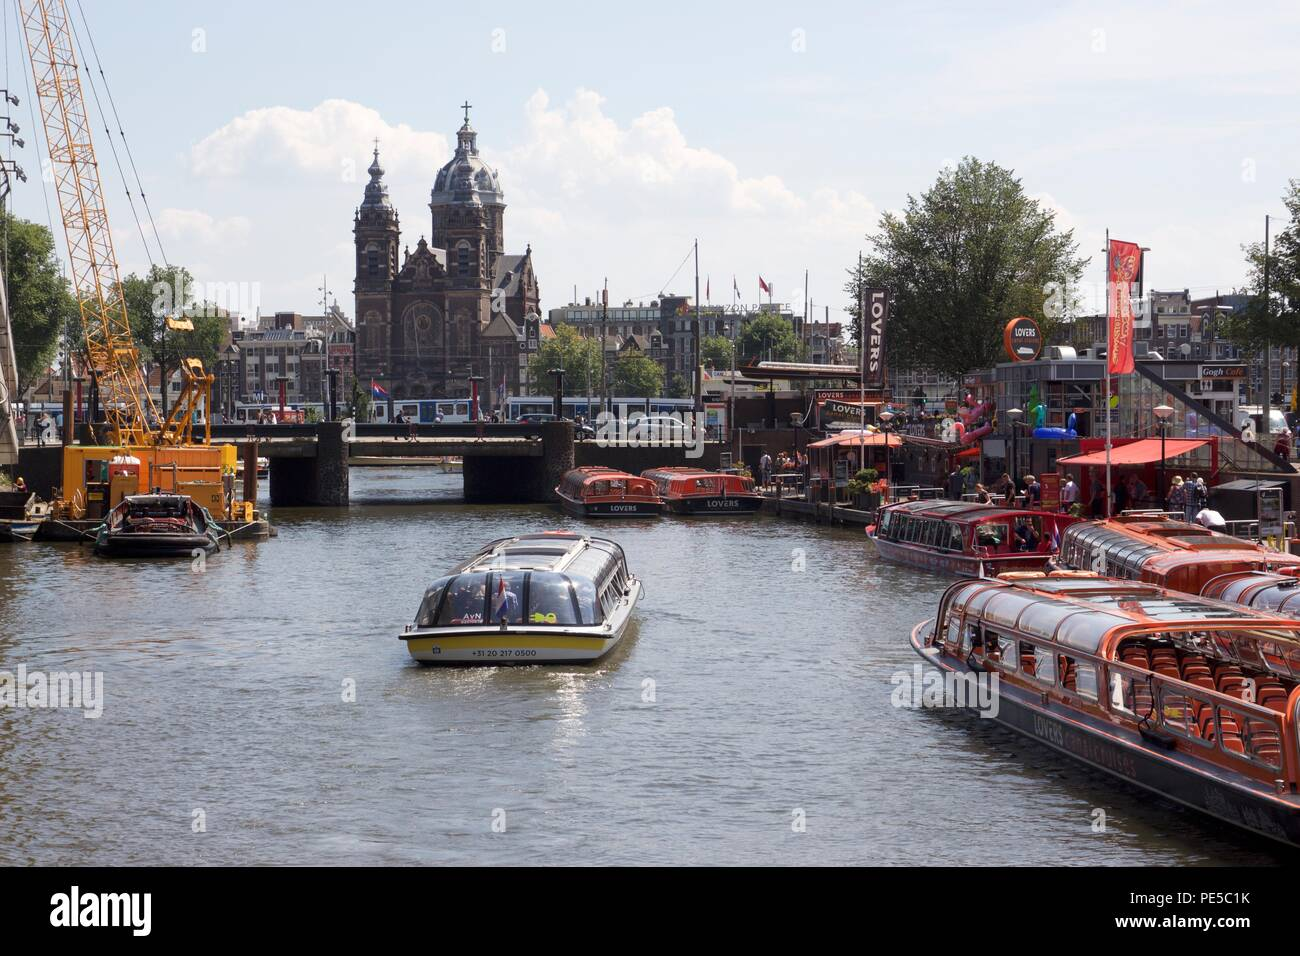 Numerous tourist boats on the river IJ in Central Amsterdam, the Netherlands - Stock Image